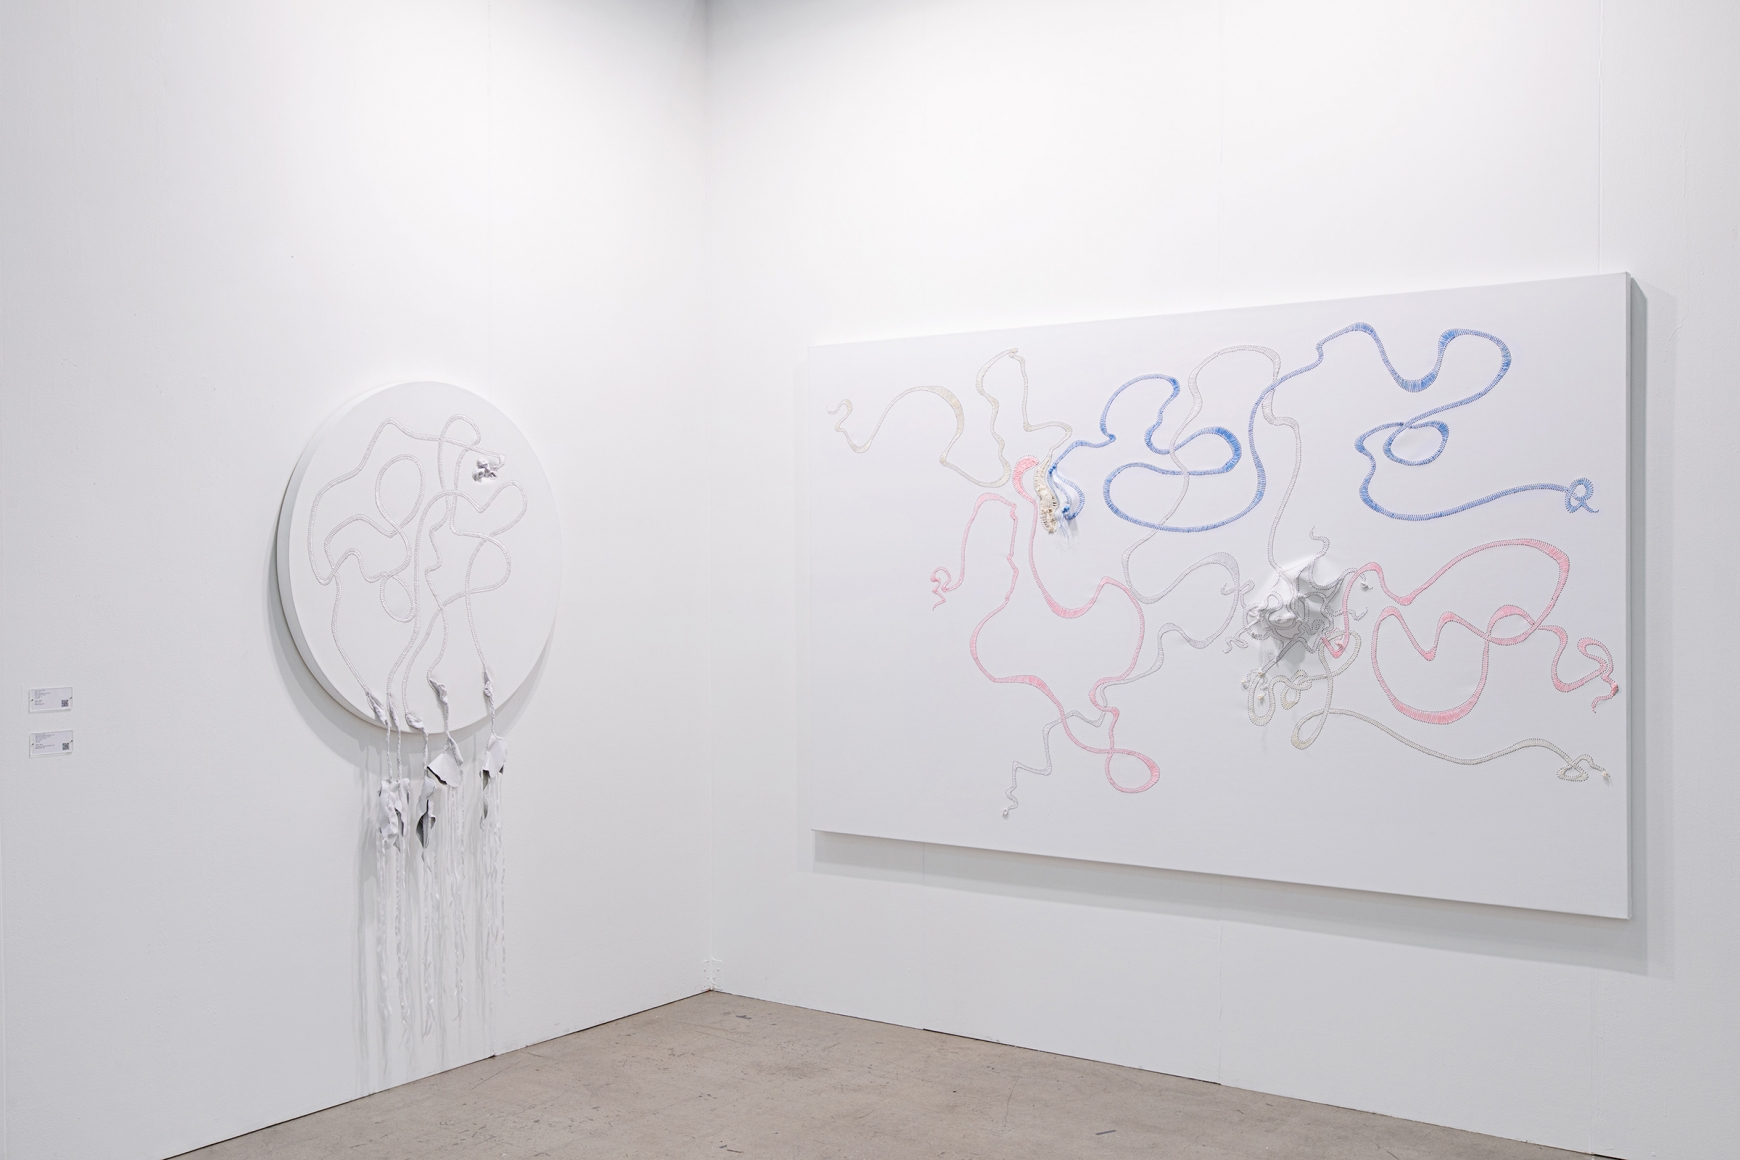 Eighth installation view of Lehmann Maupin's booth at Art Busan & design 2020